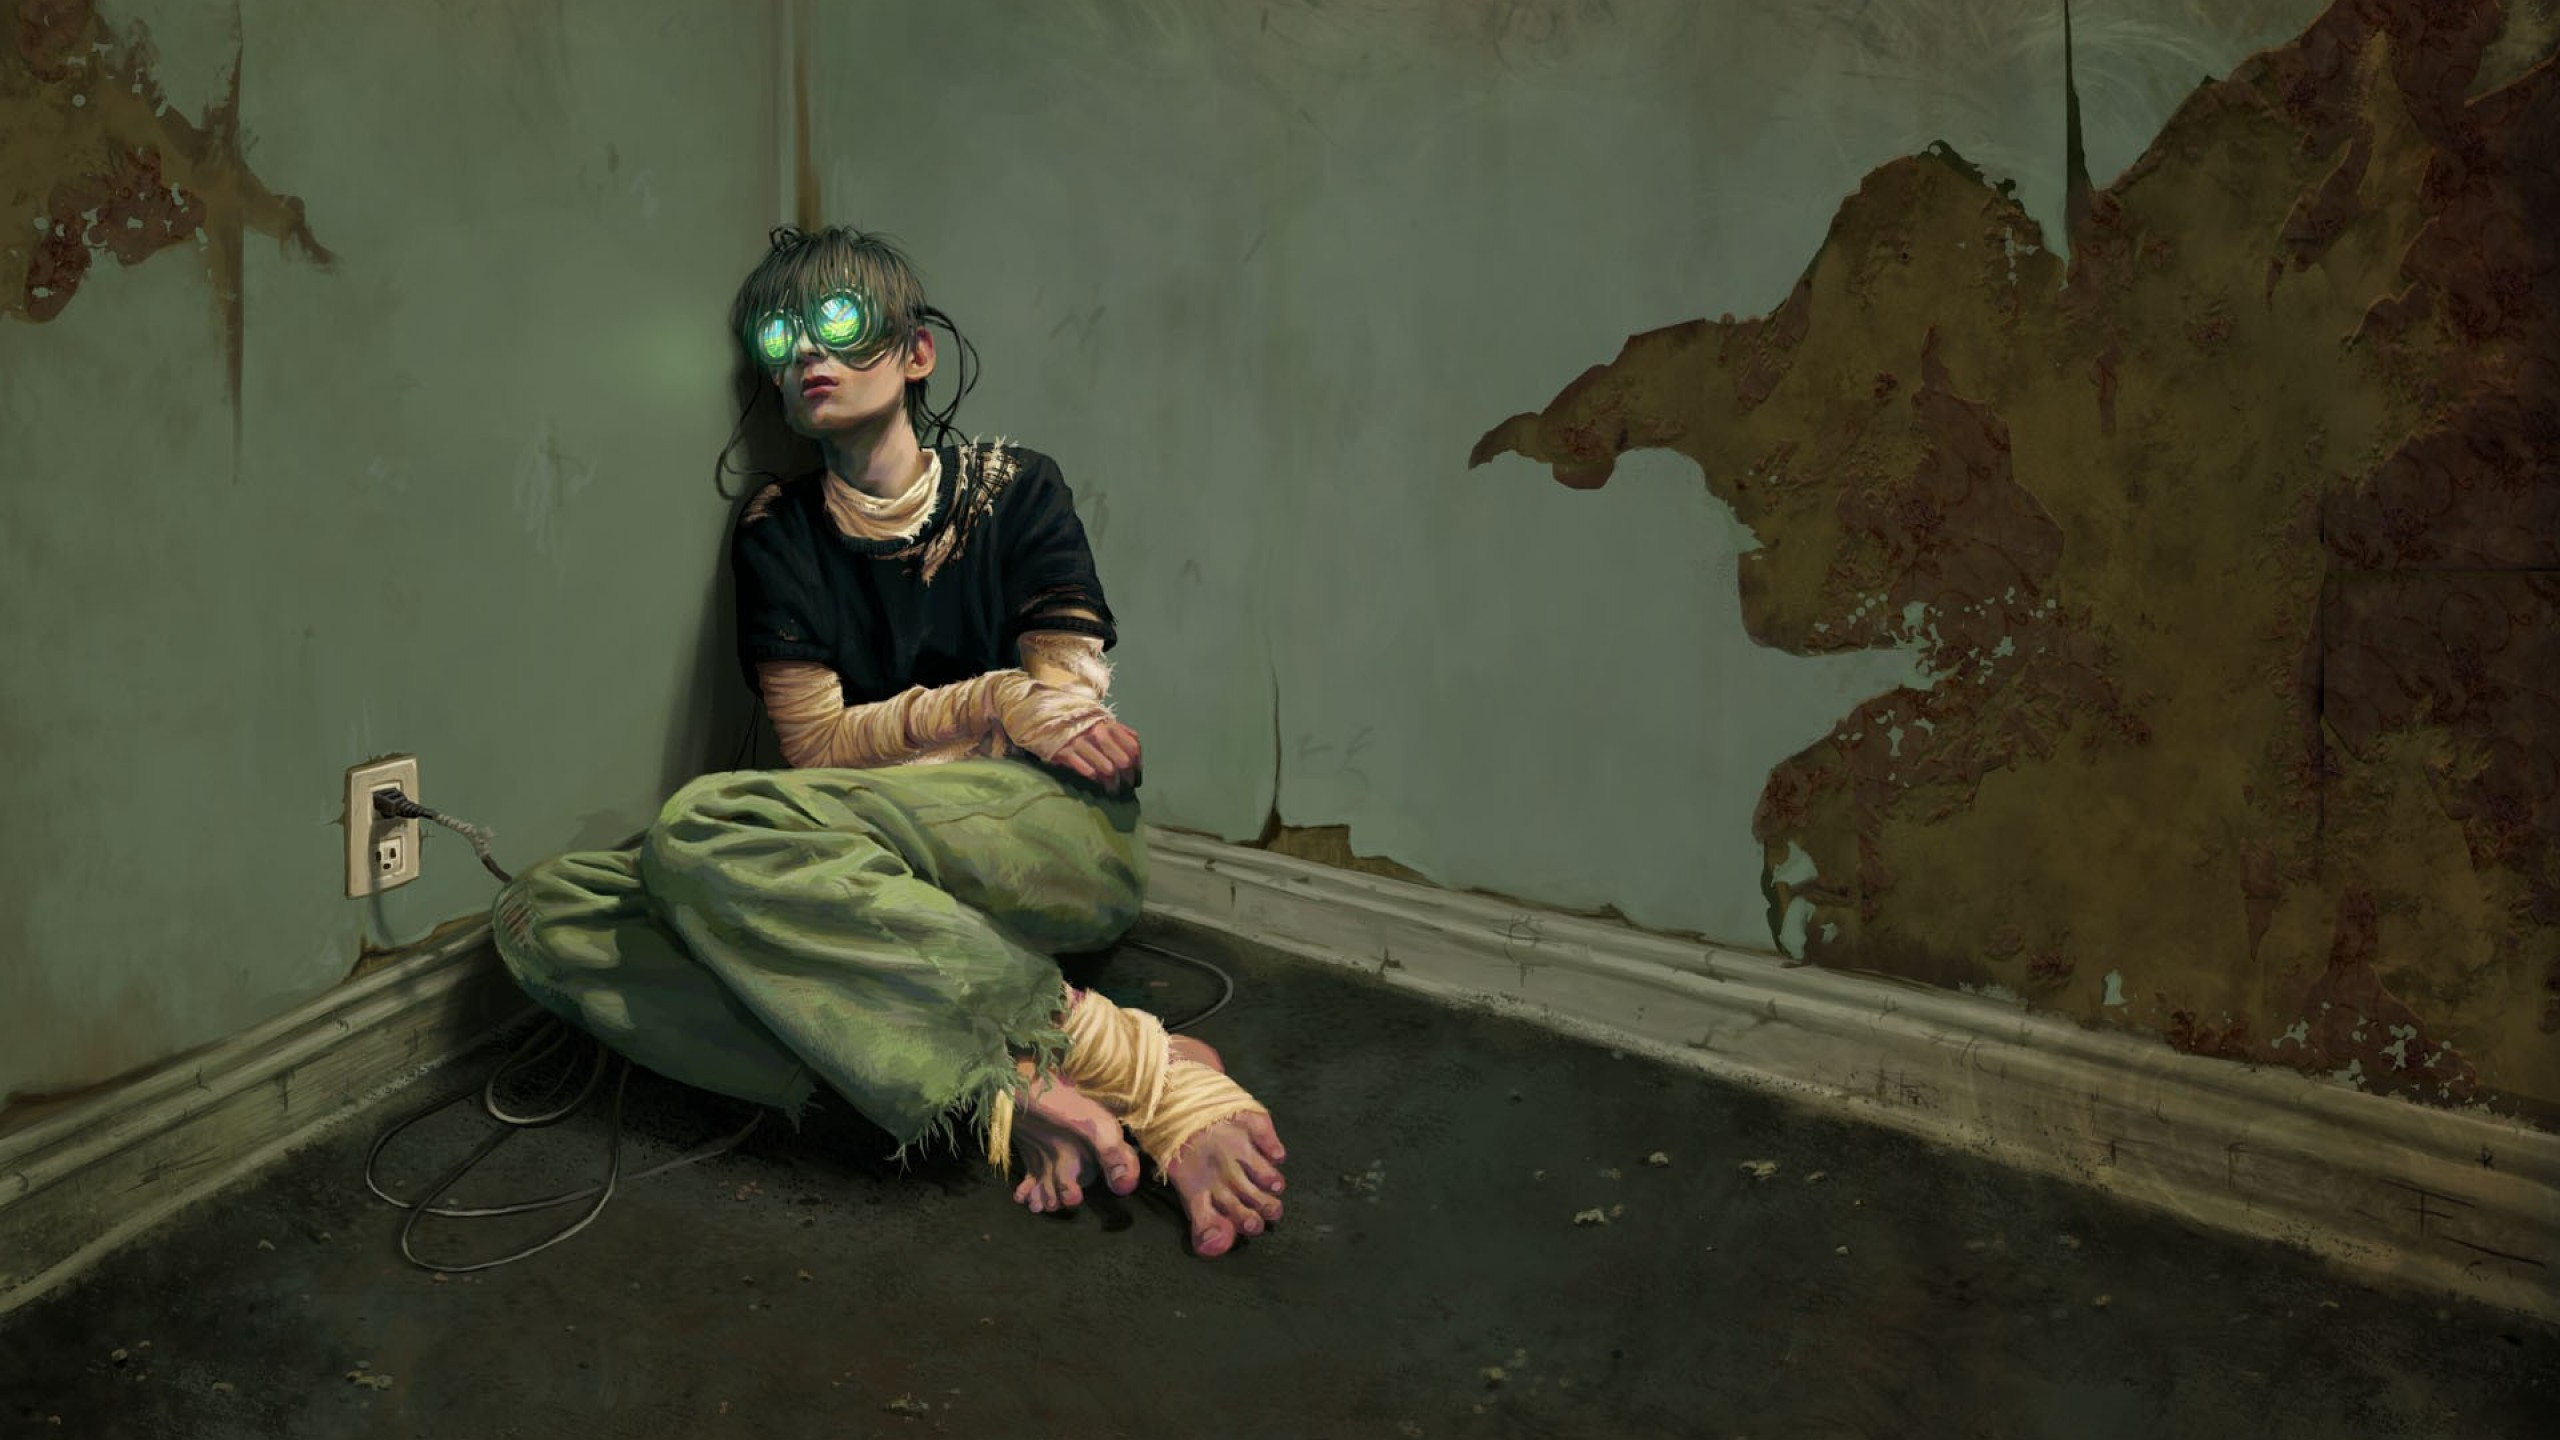 Wallpaper cyberpunk virtual reality glass addict room art 395 original resolution 2560x1440 voltagebd Choice Image